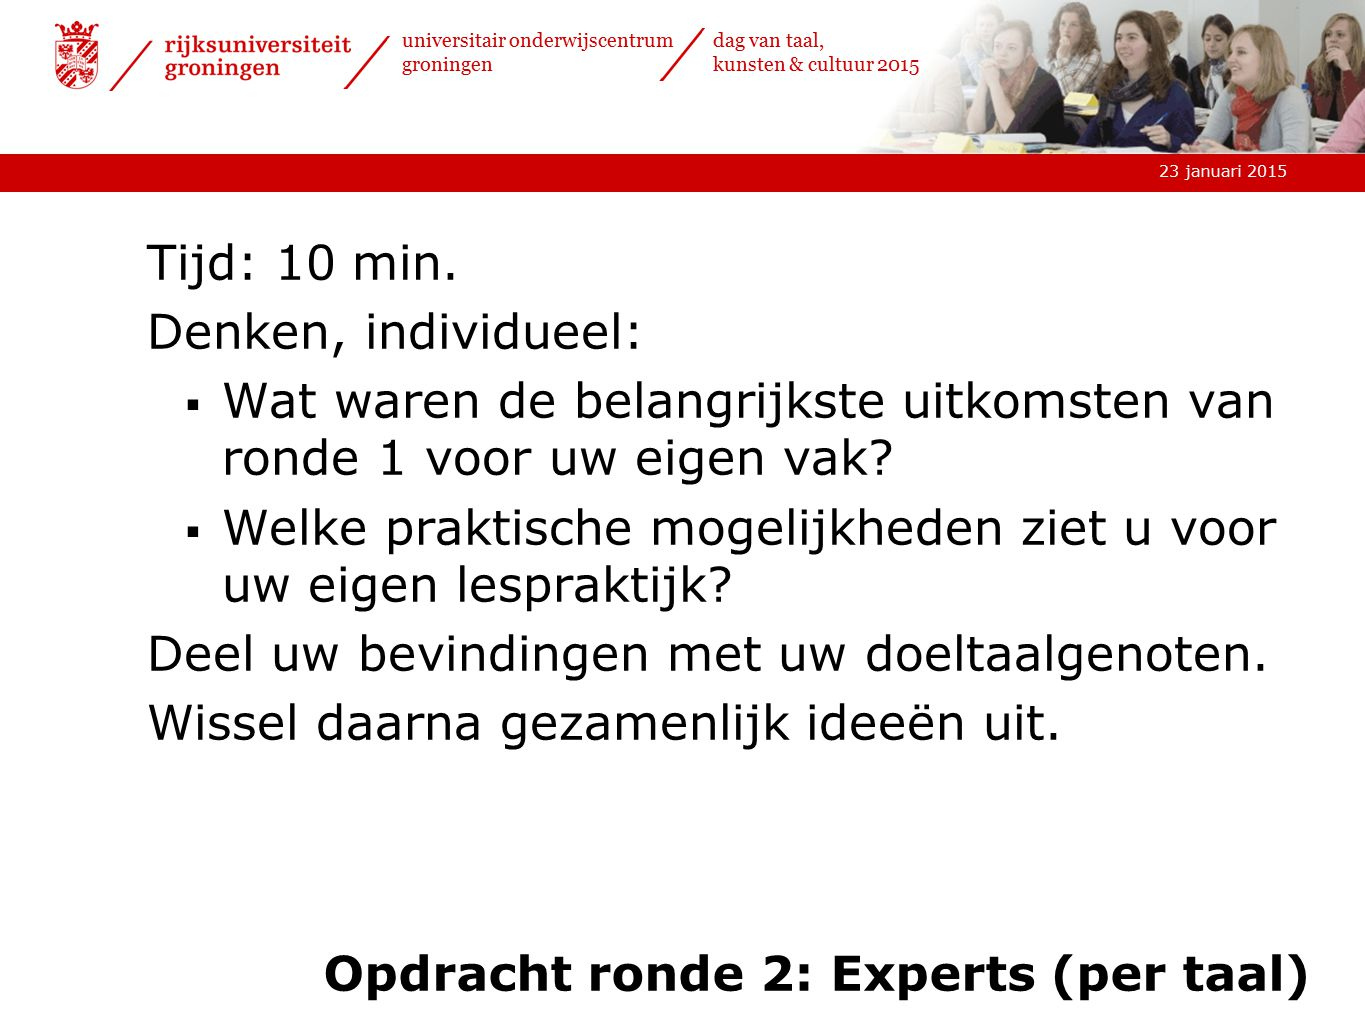 Opdracht ronde 2: Experts (per taal)